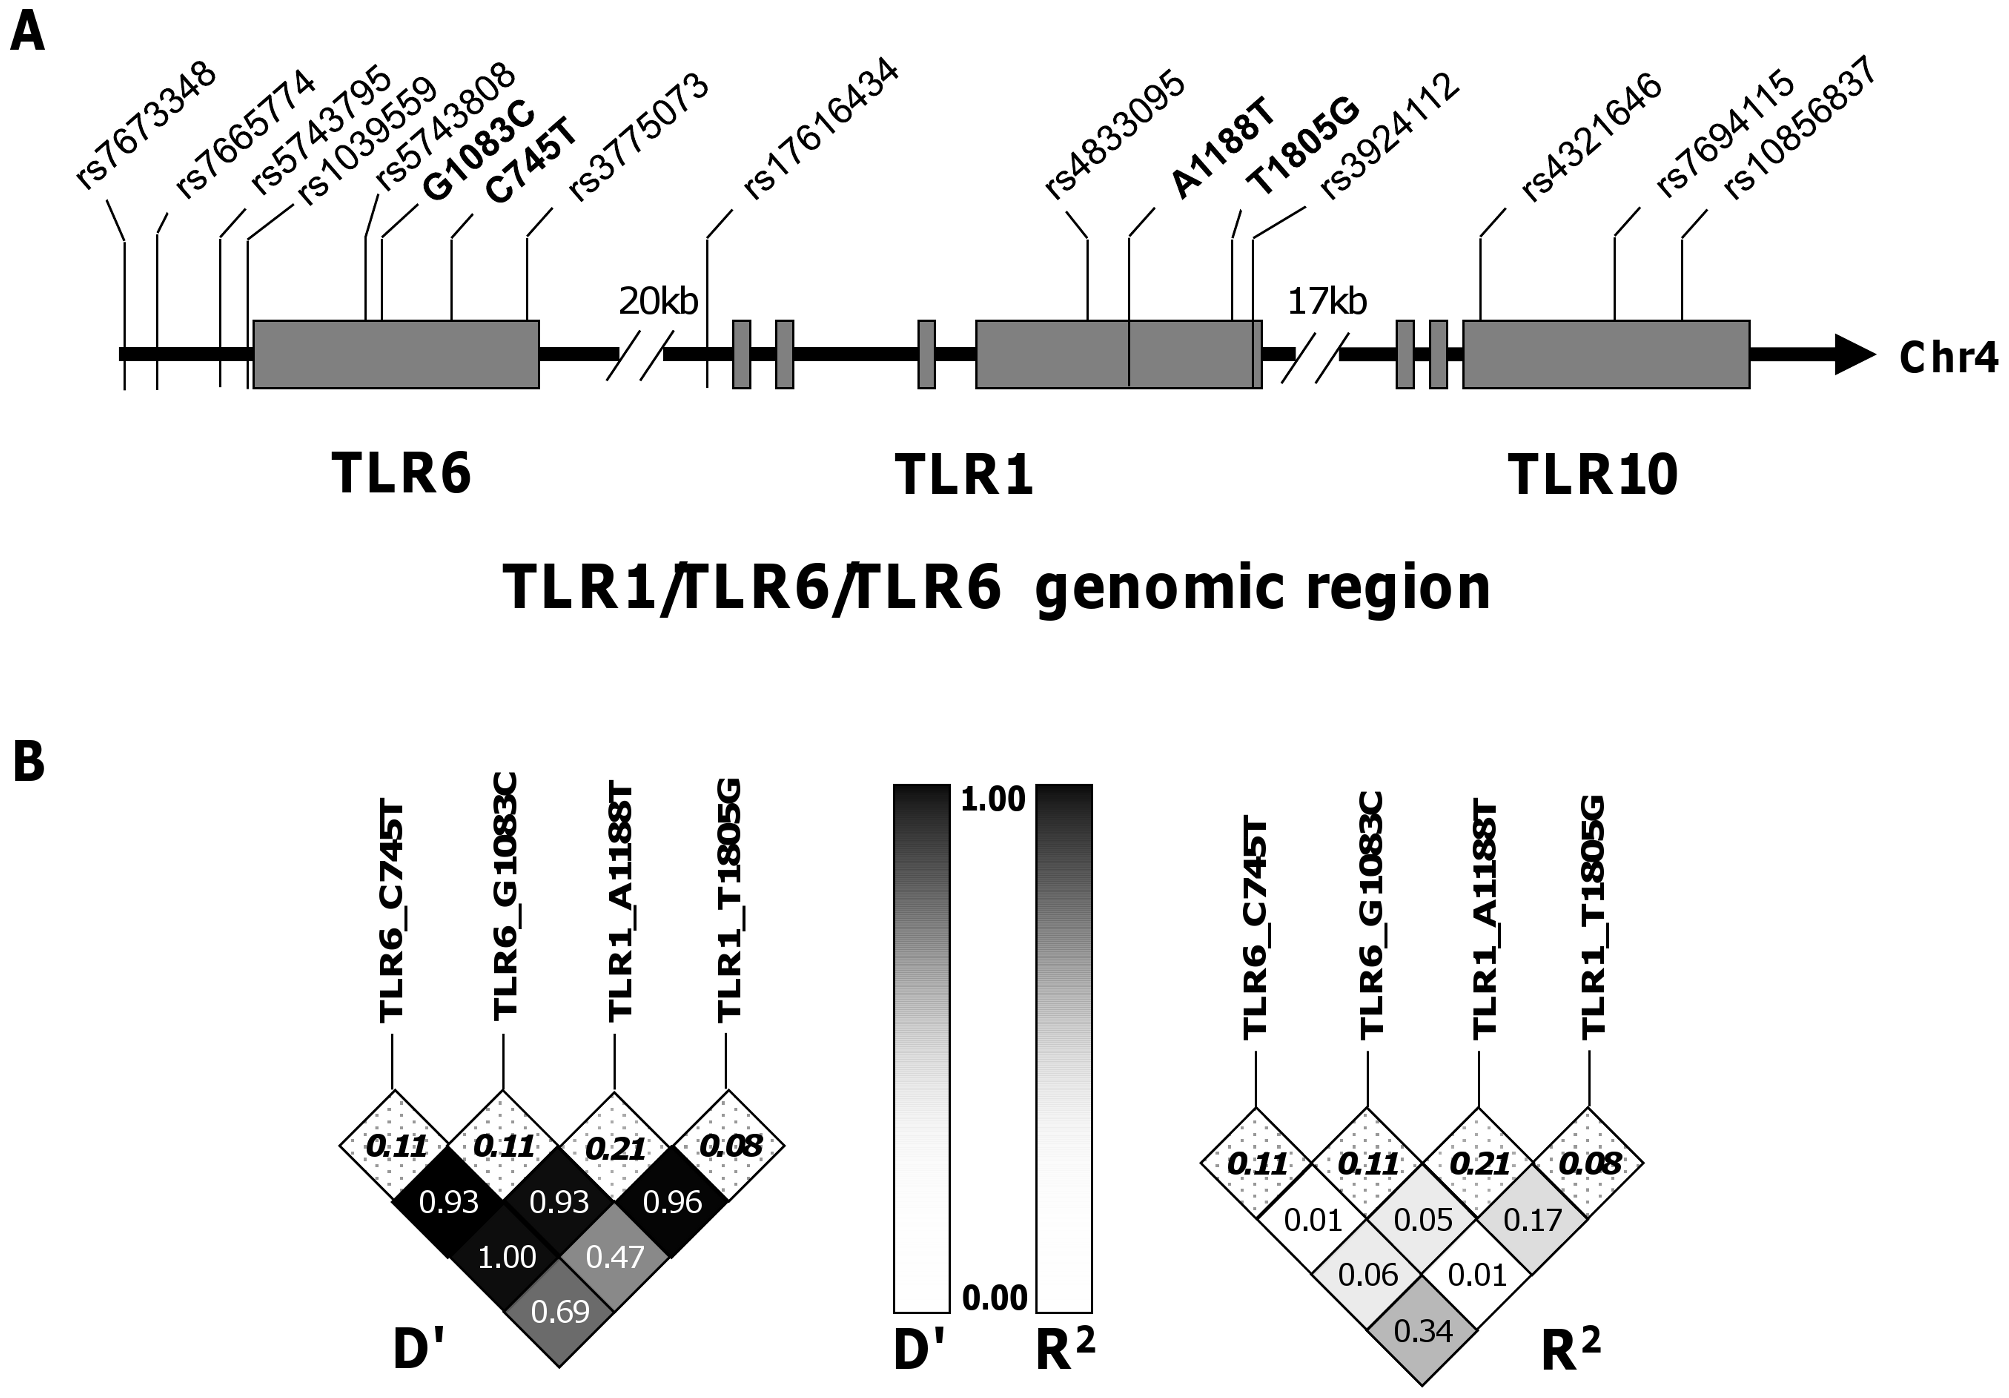 Haplotype tagging SNPs and pair-wise linkage disequilibrium analysis of TLR1-6-10 gene region.